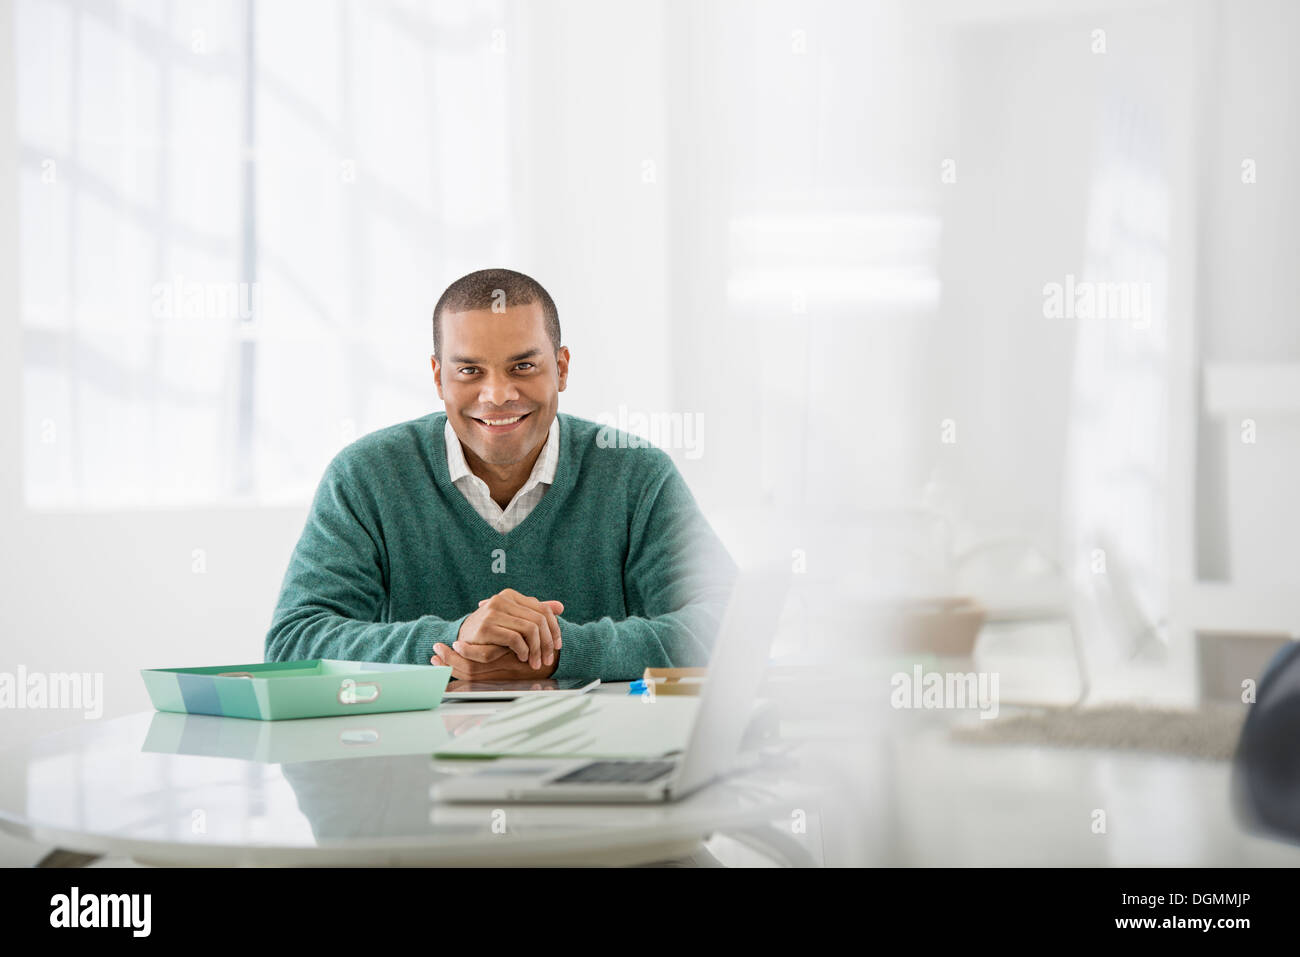 Business. A man sitting with his hands clasped behind a desk. - Stock Image